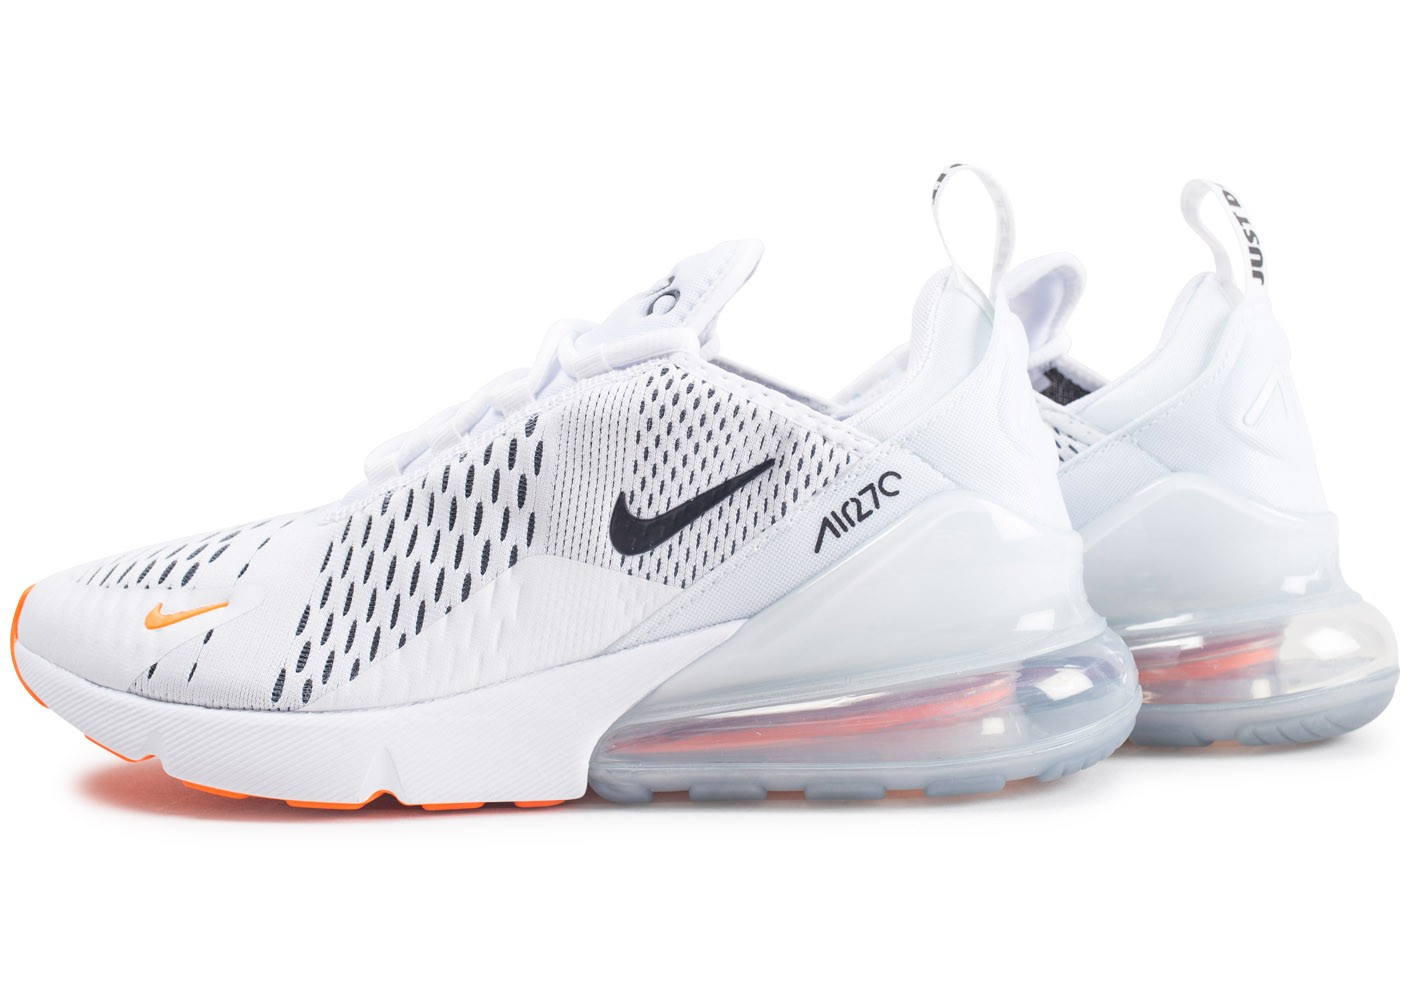 Nike Air Max 270 Just do It blanc total orange Chaussures